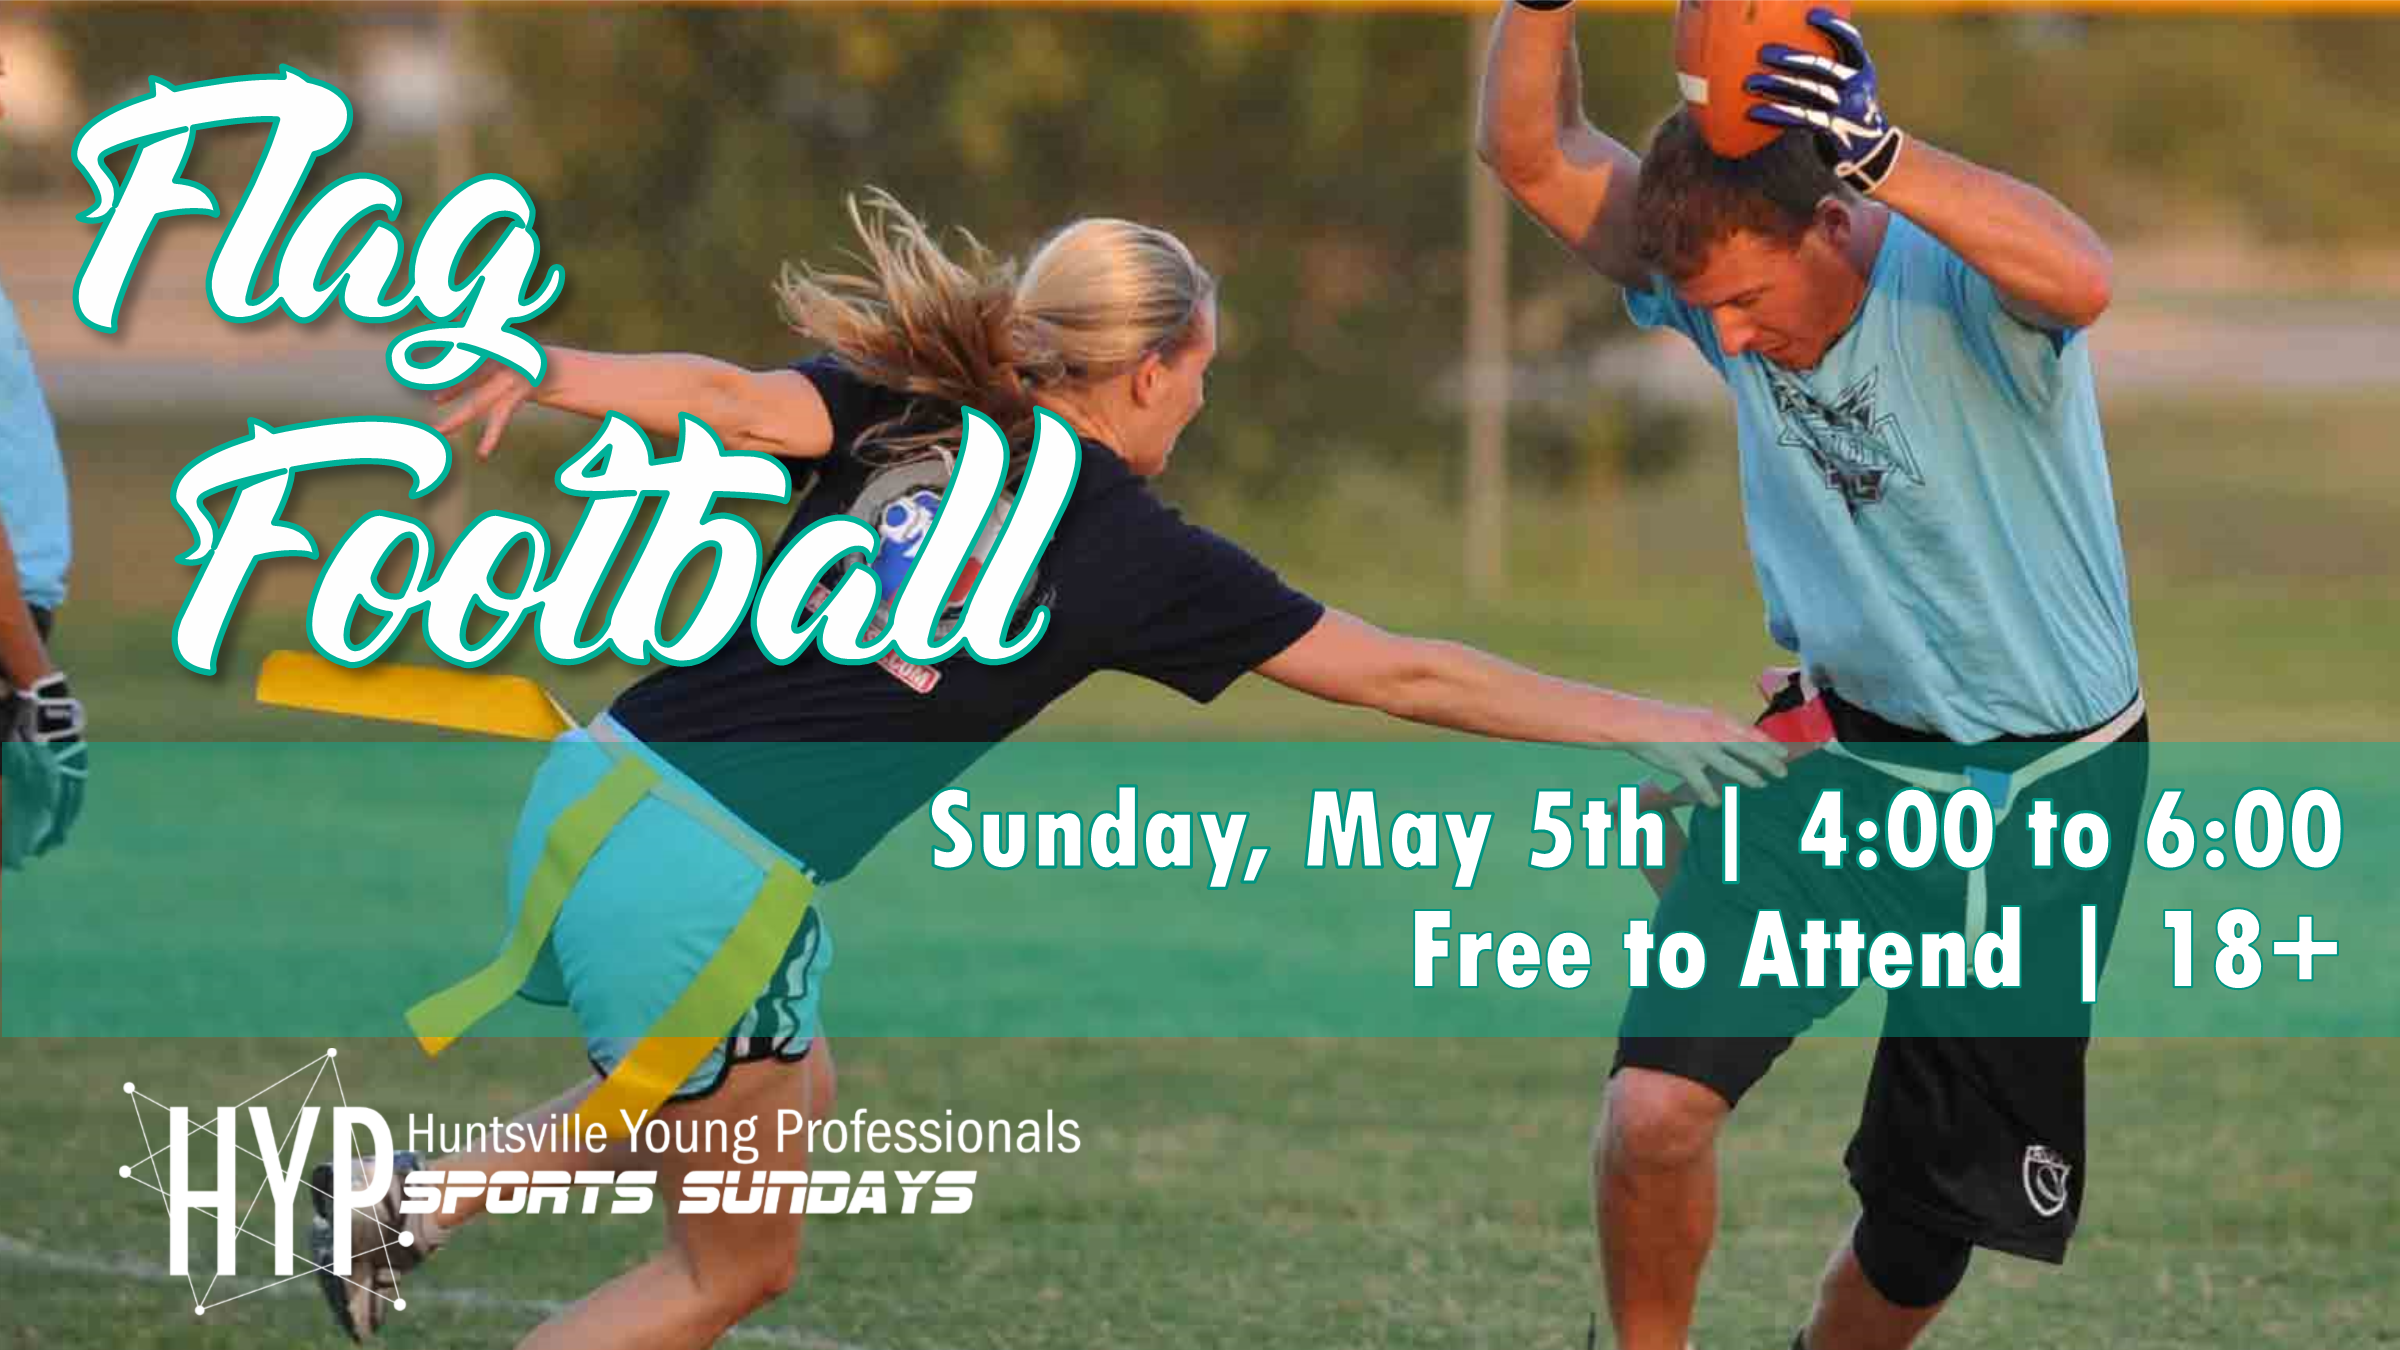 Sports Sundays is back for the third year! The first sport up is flag football. We will be meeting on May 5th, 2019 from 4:00 pm to 6:00 pm. Be sure to join the Facebook  Event  to stay up to date.